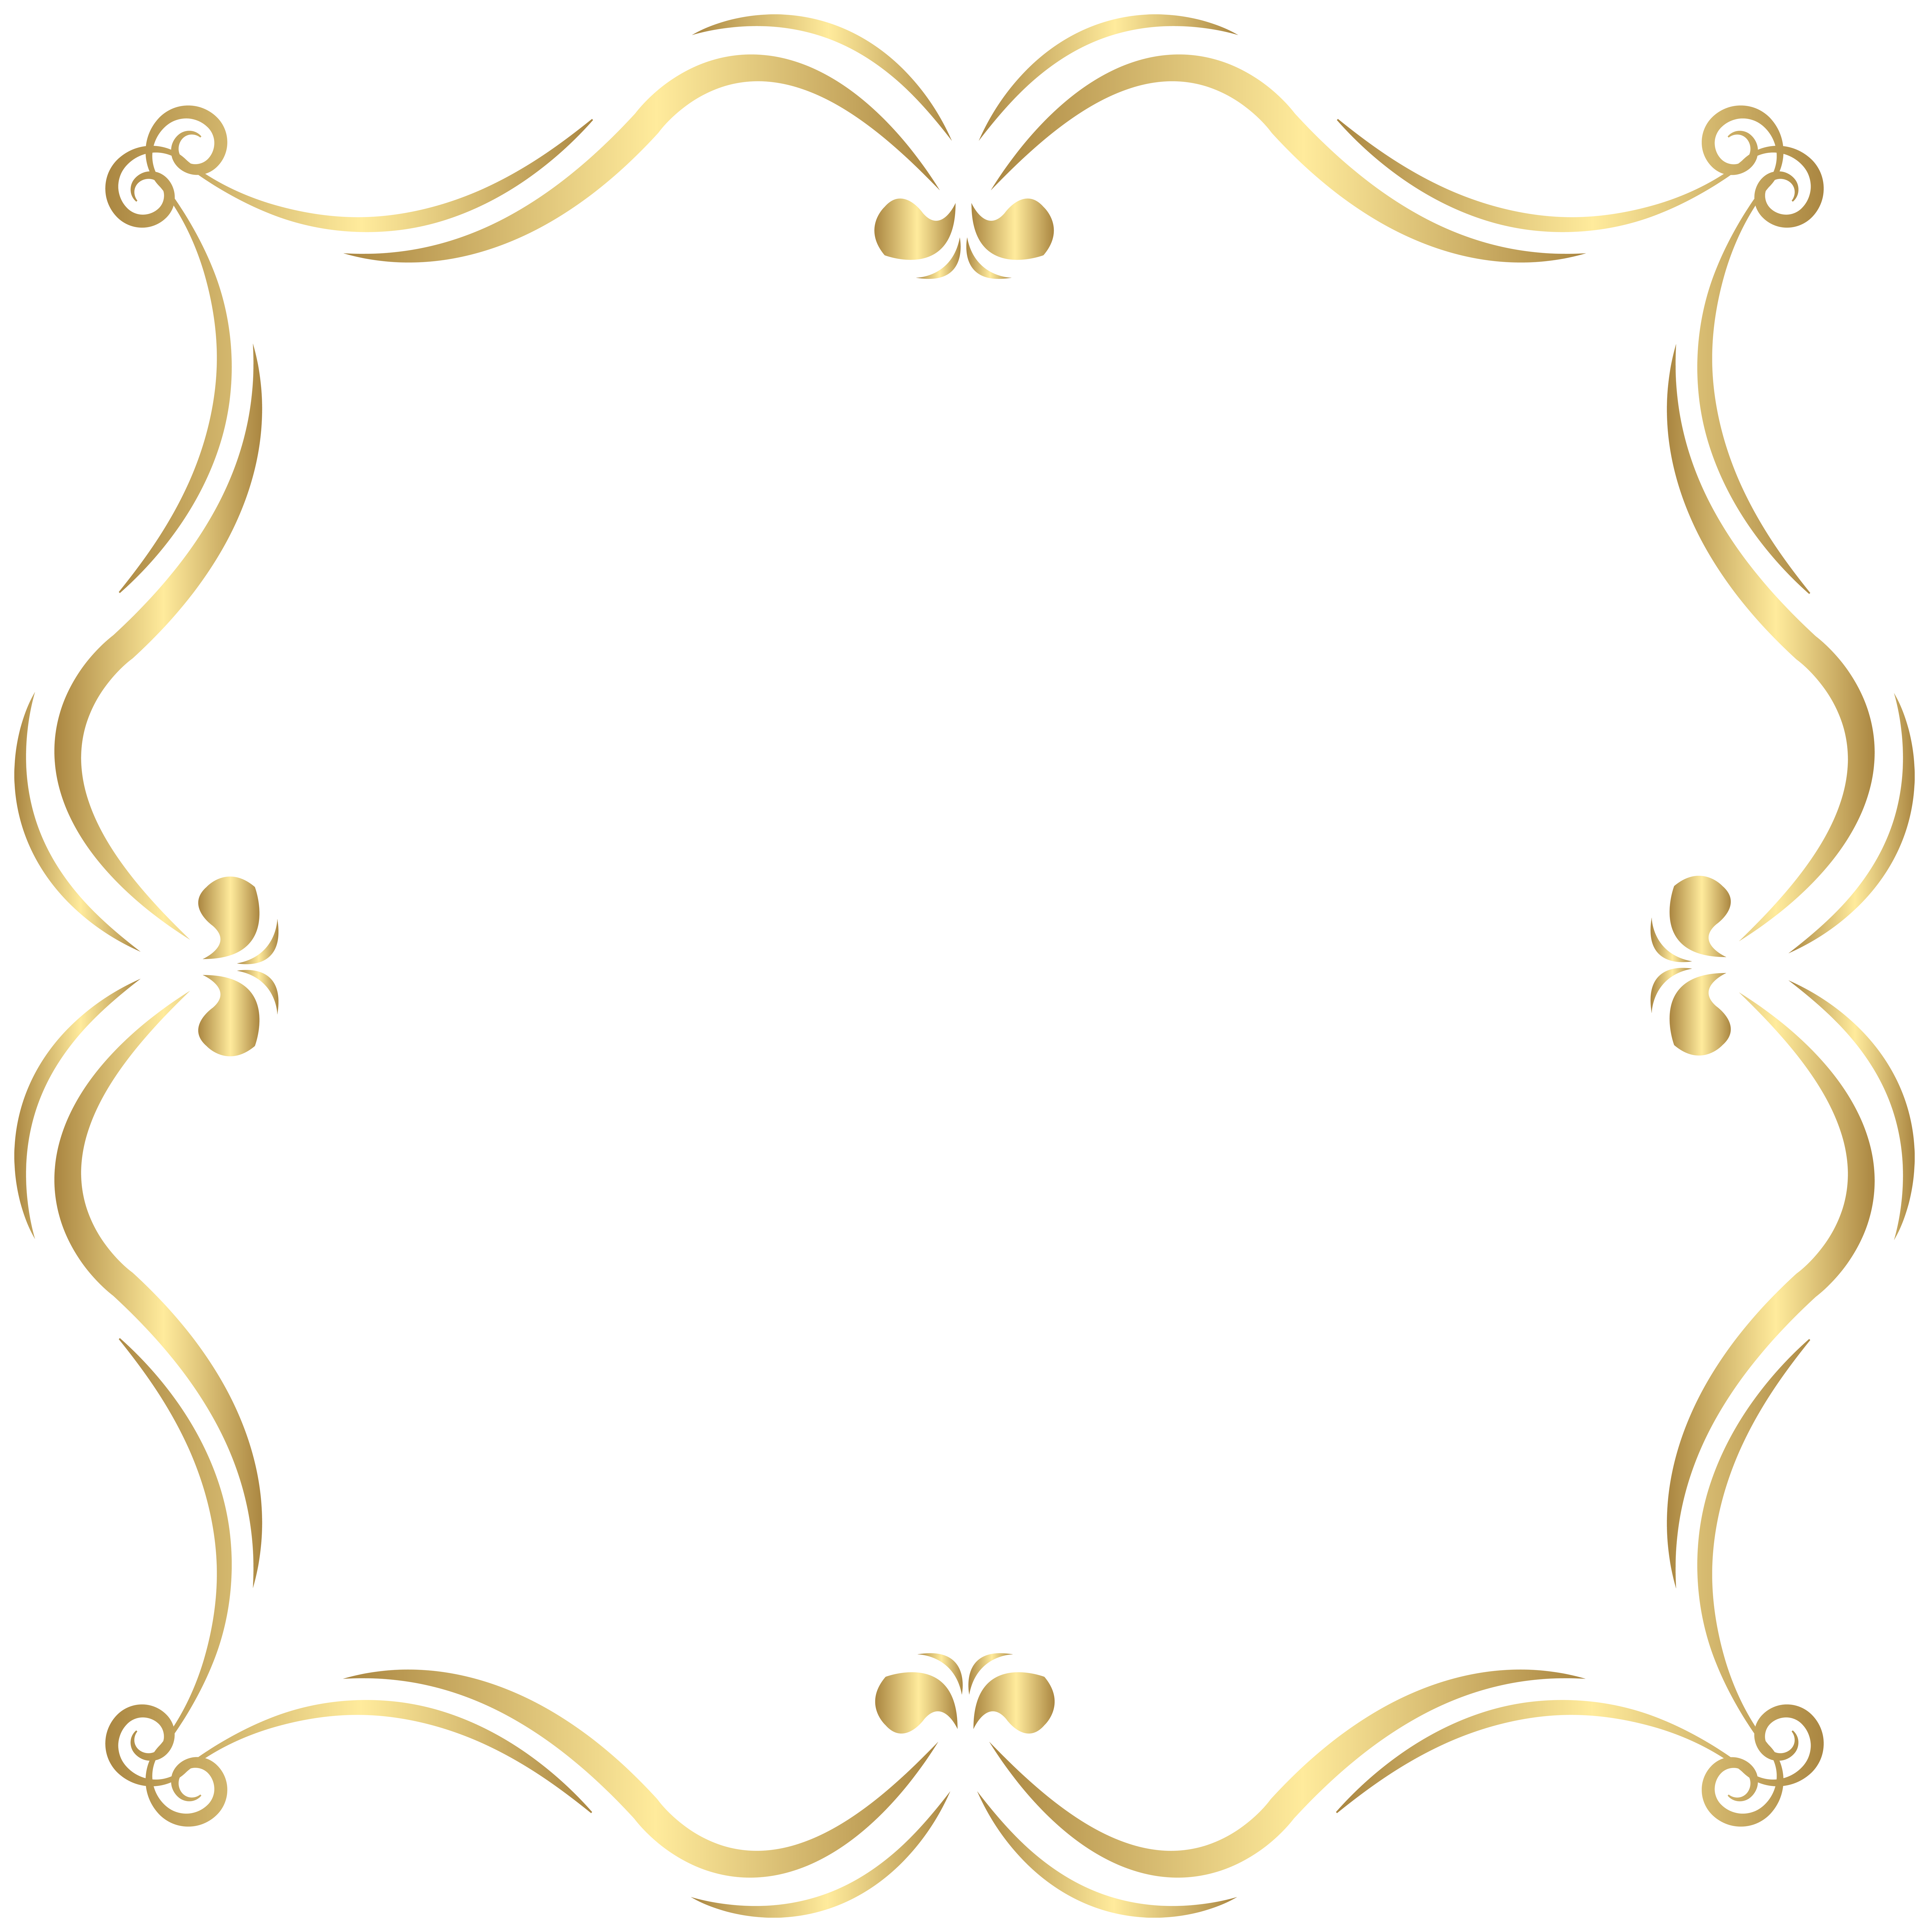 Gold borders clipart png free Gold Border PNG Clip Art Image | Gallery Yopriceville - High ... png free